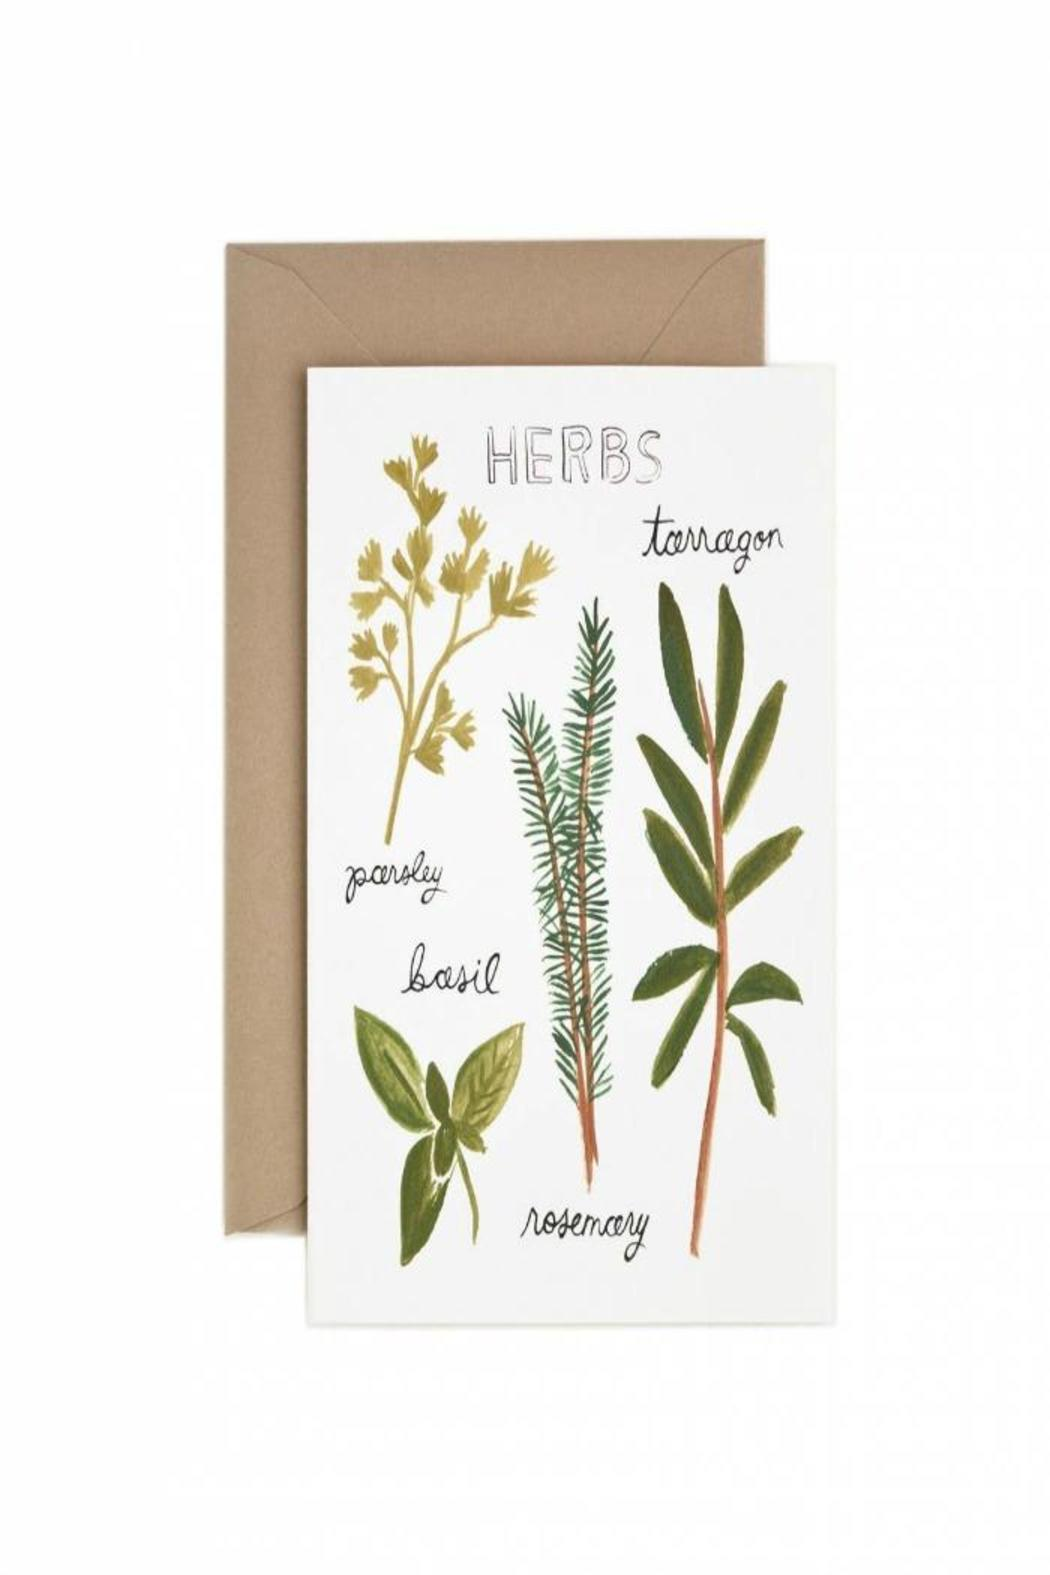 Rifle Paper Co Herb Greeting Card From Orange County By Tin